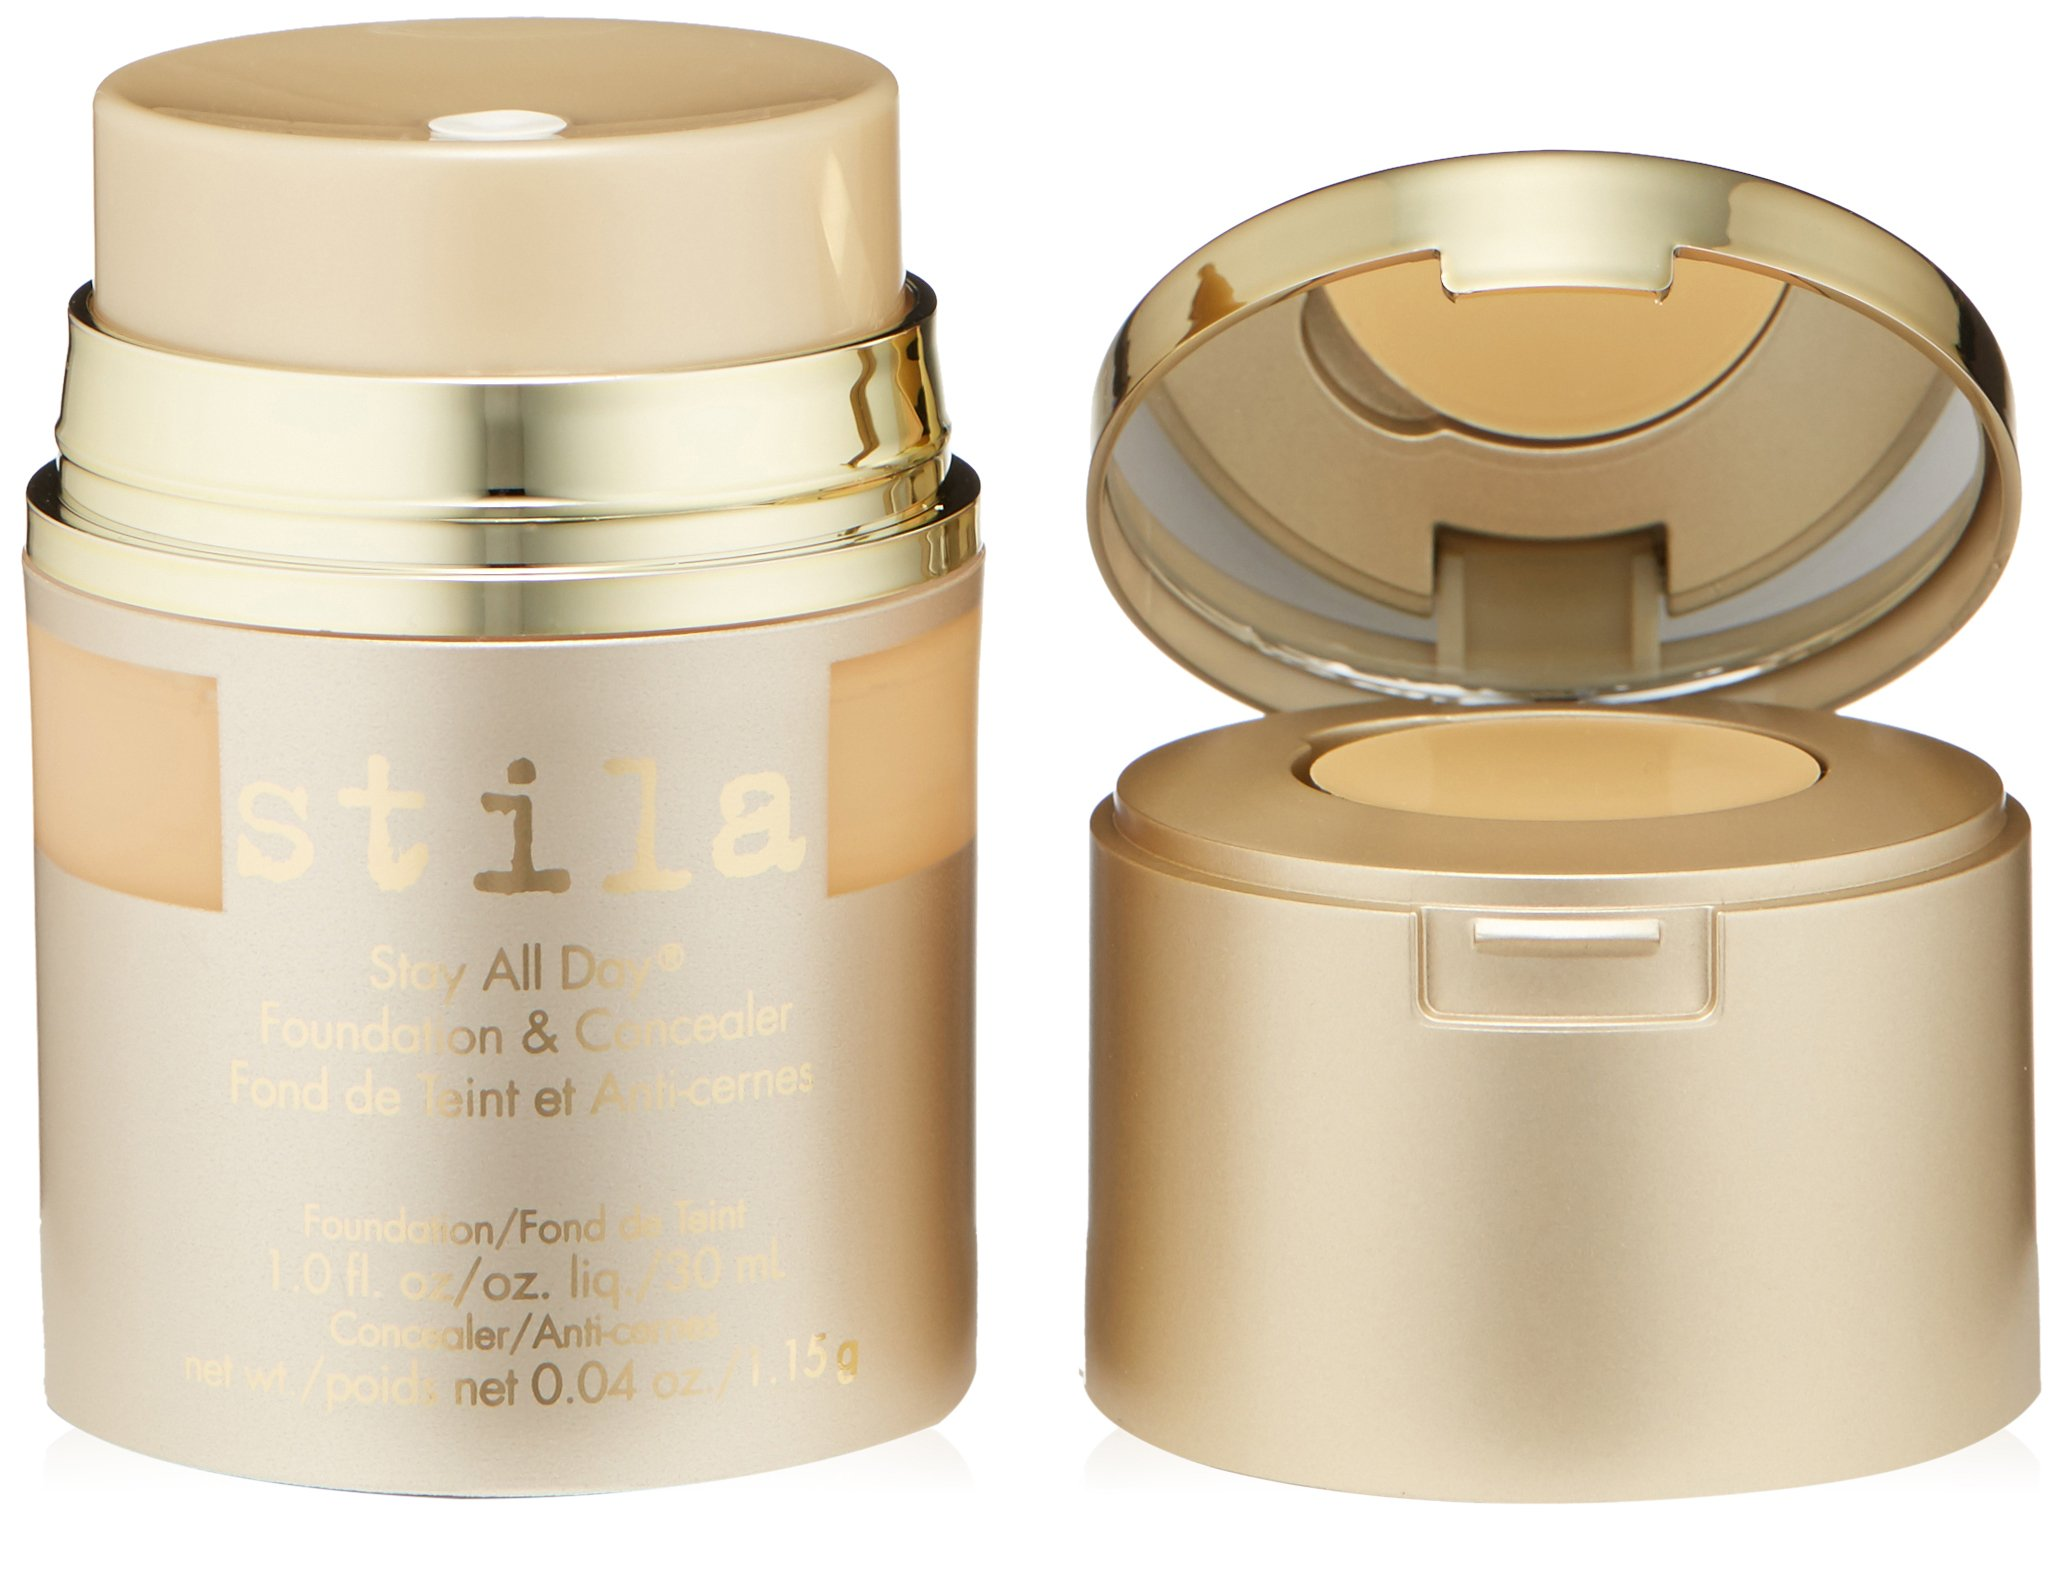 stila Stay All Day Foundation & Concealer, Light 3, 1 Count